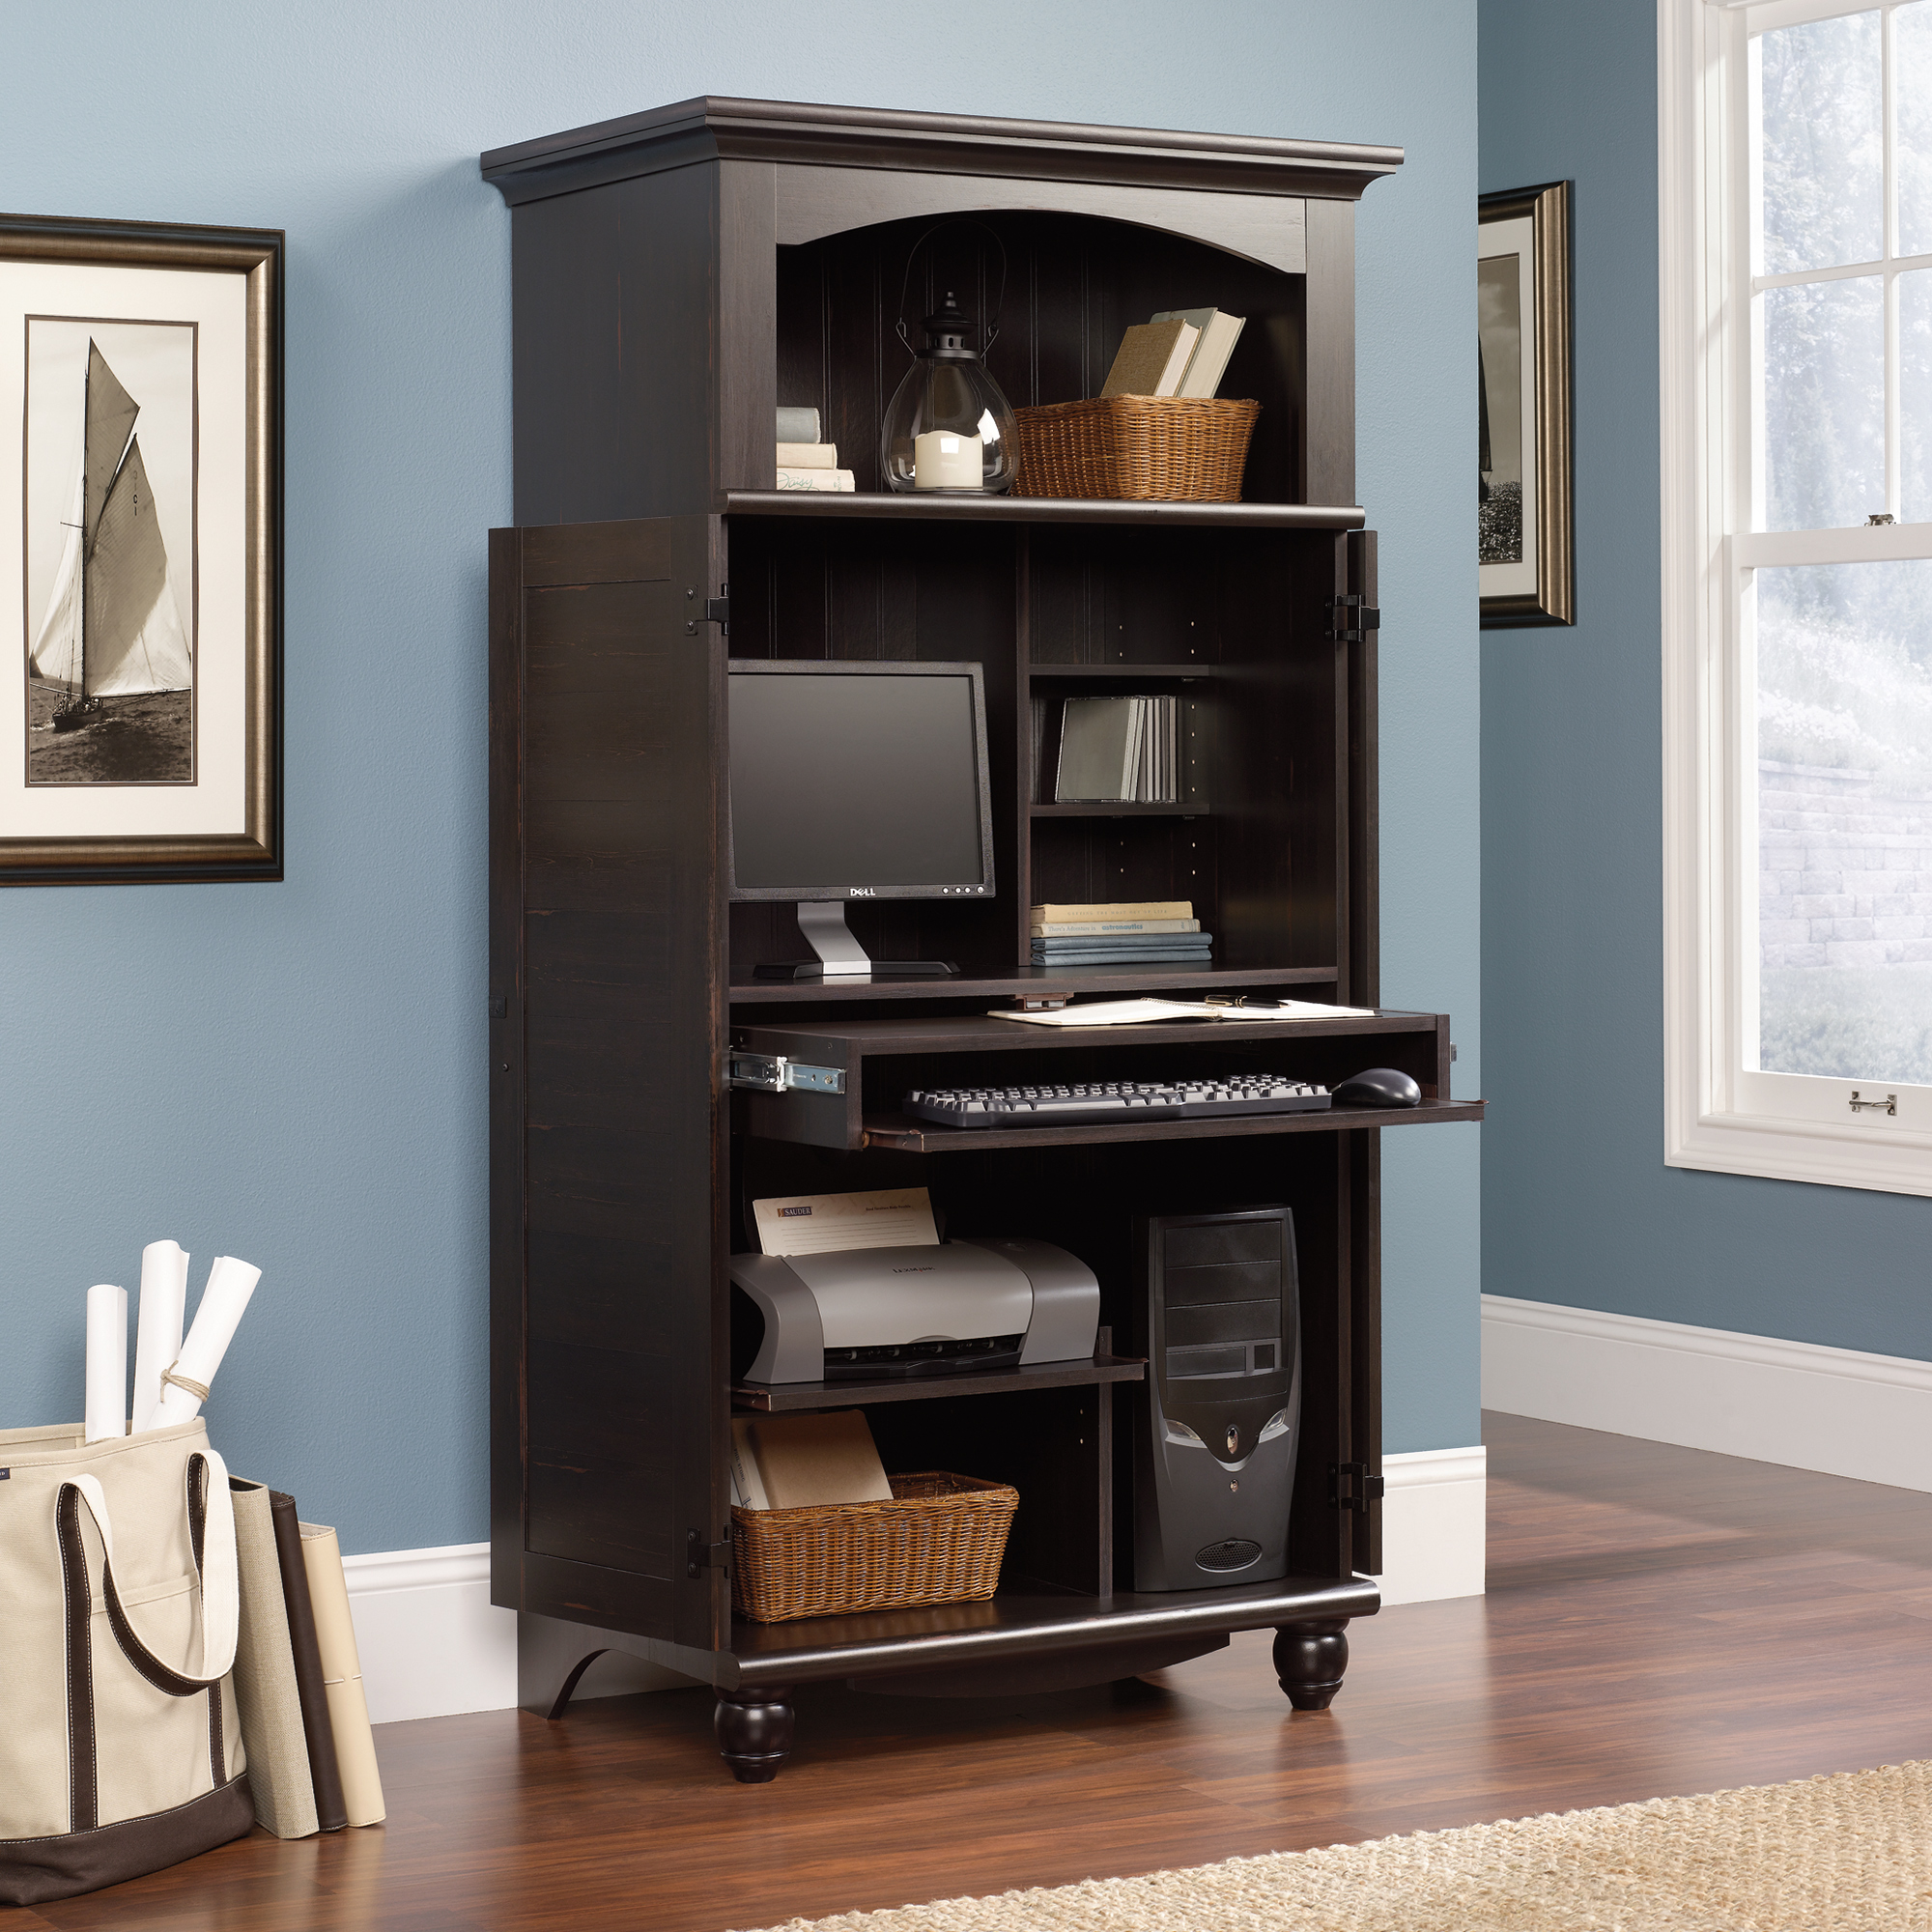 Computer Armoire in black with blue wall and picture